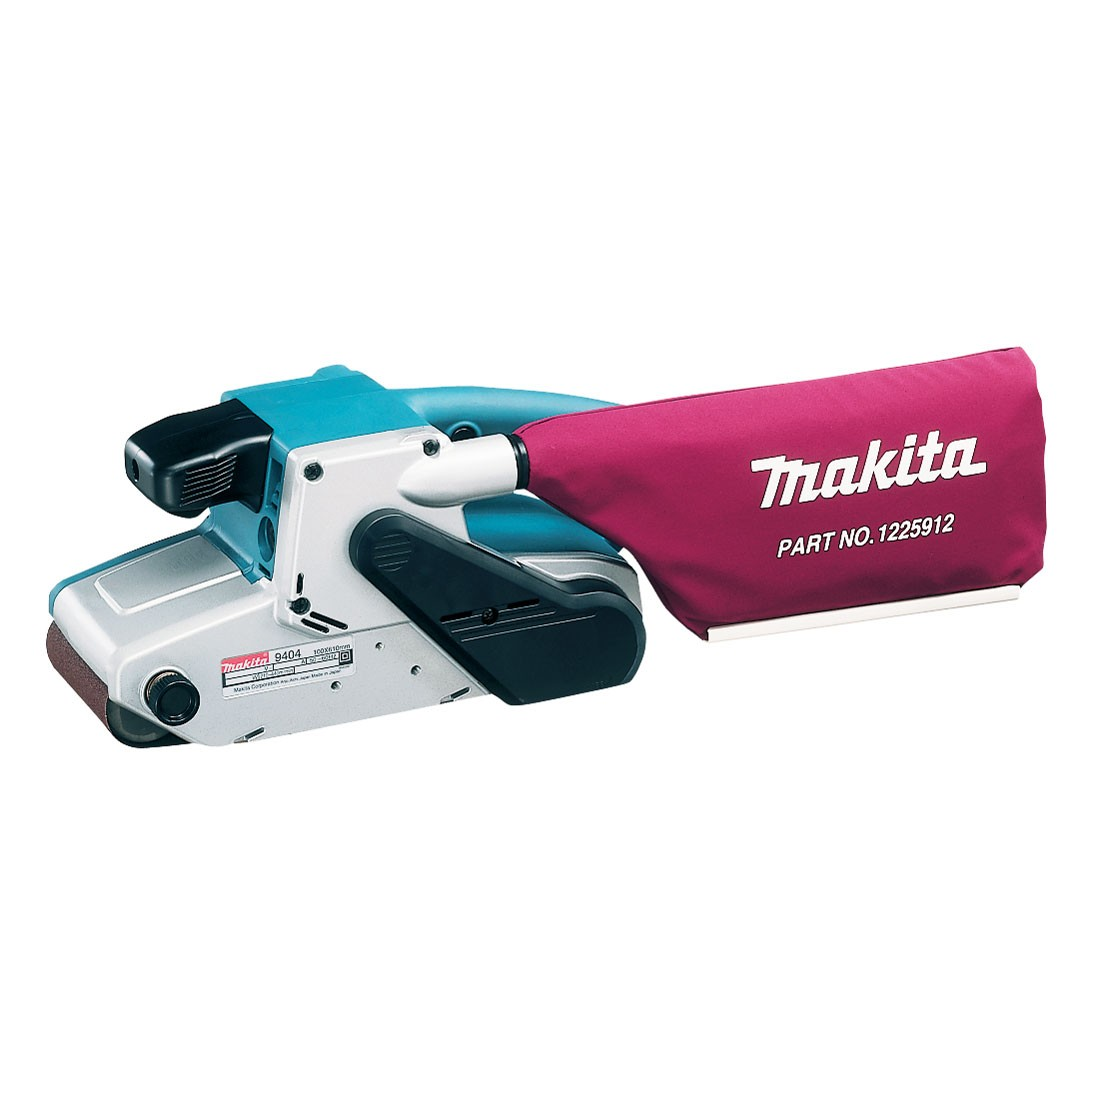 Makita 9404 Belt Sander 1010W 110v